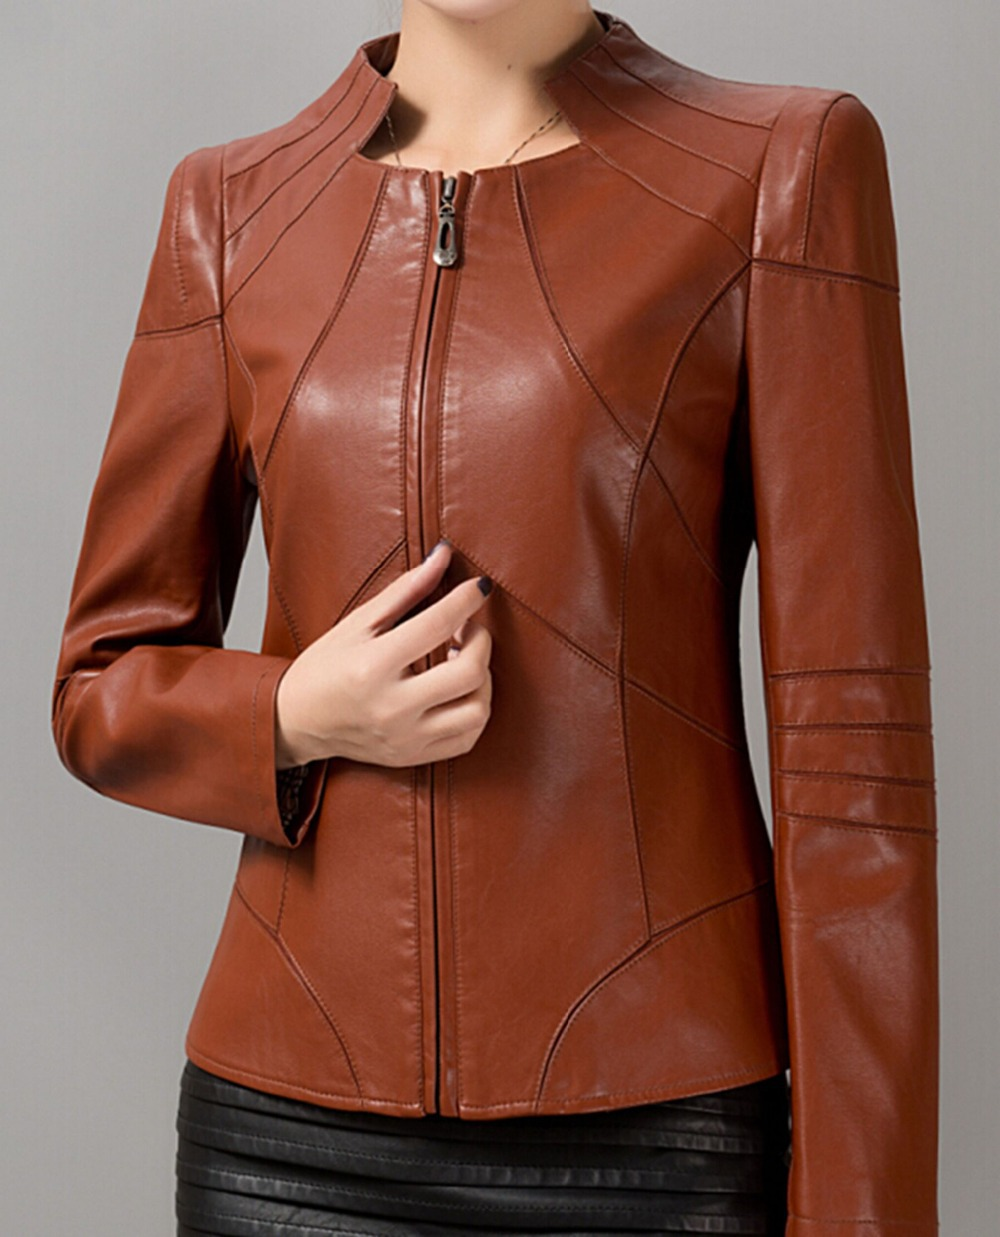 Shop our range of Women's Leather Jackets online at David Jones. Shop from top brands like Ena Pelly, Karen Millen & Sabatini. Free & fast delivery available.